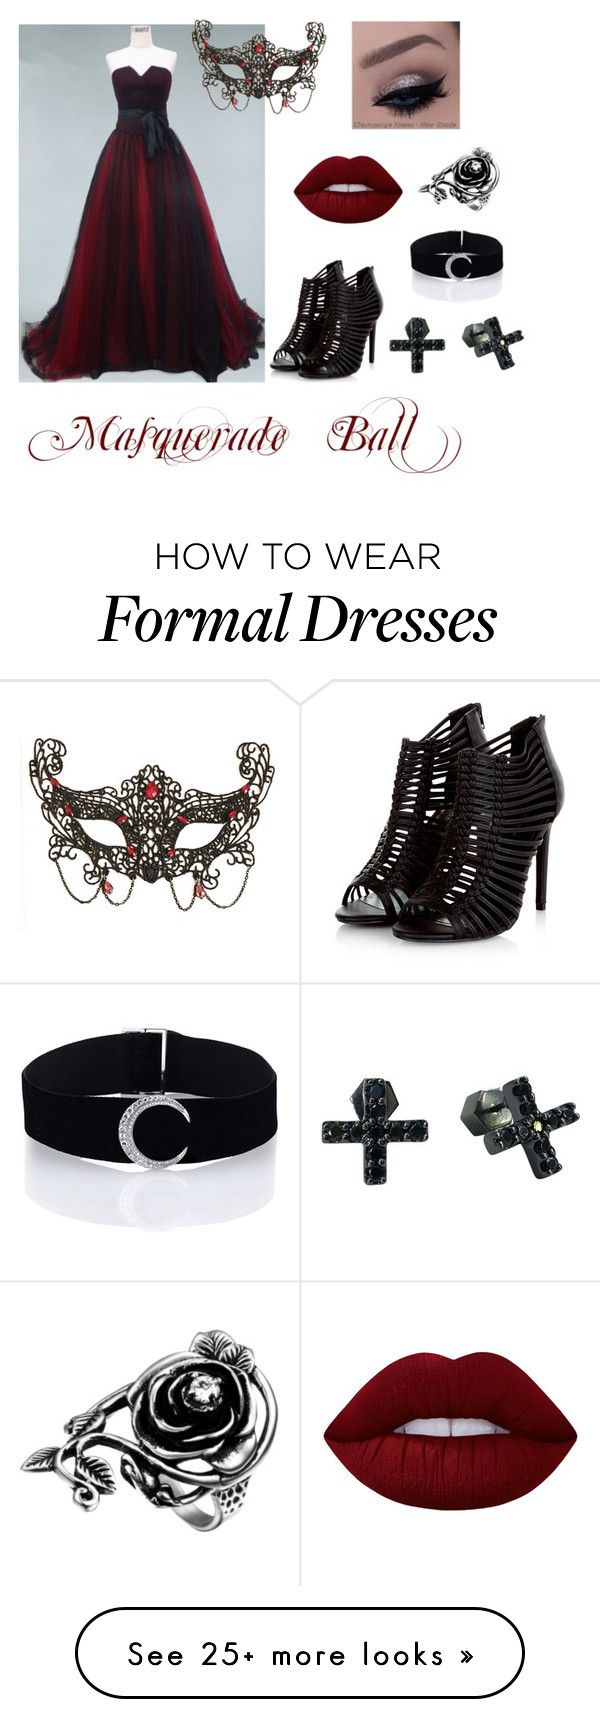 best clothes images on pinterest high fashion fashion plates